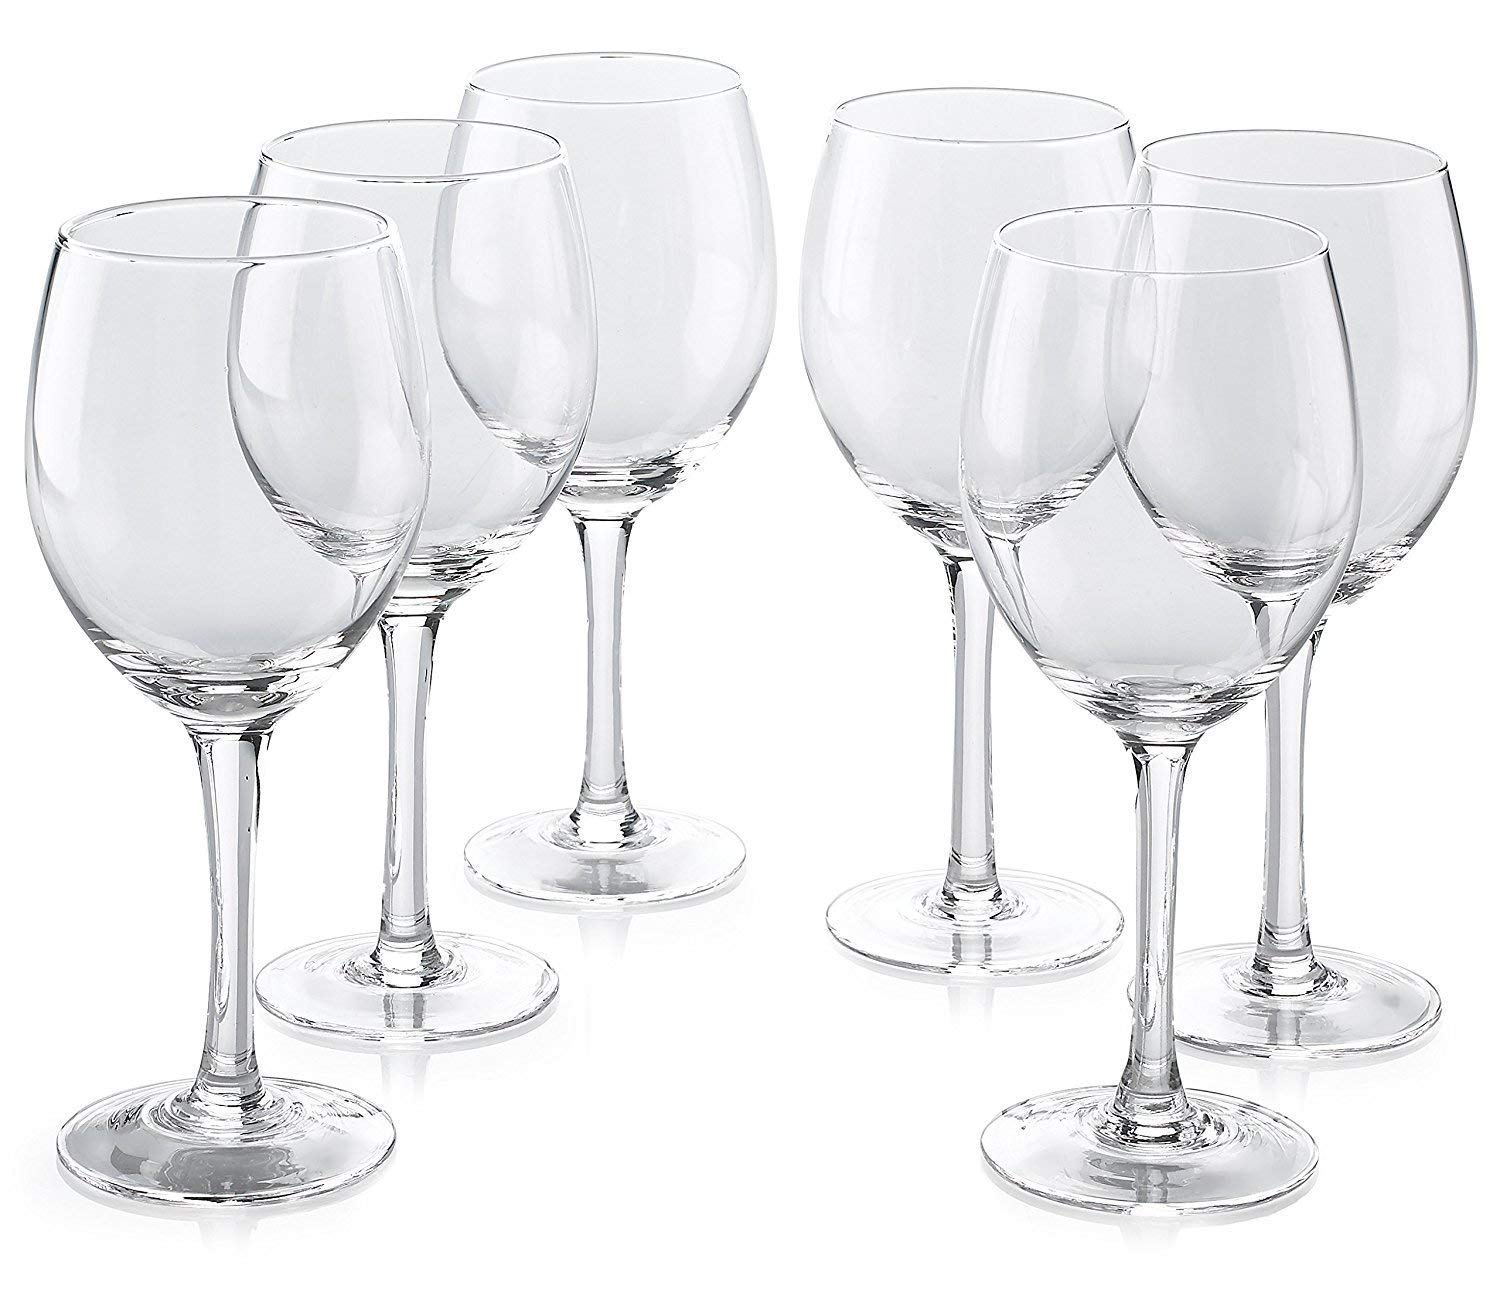 Classic Premium All Purpose Clear Wine Glasses Lead Free - Set Of 6 (14 Ounce) - Water Glass with Stem